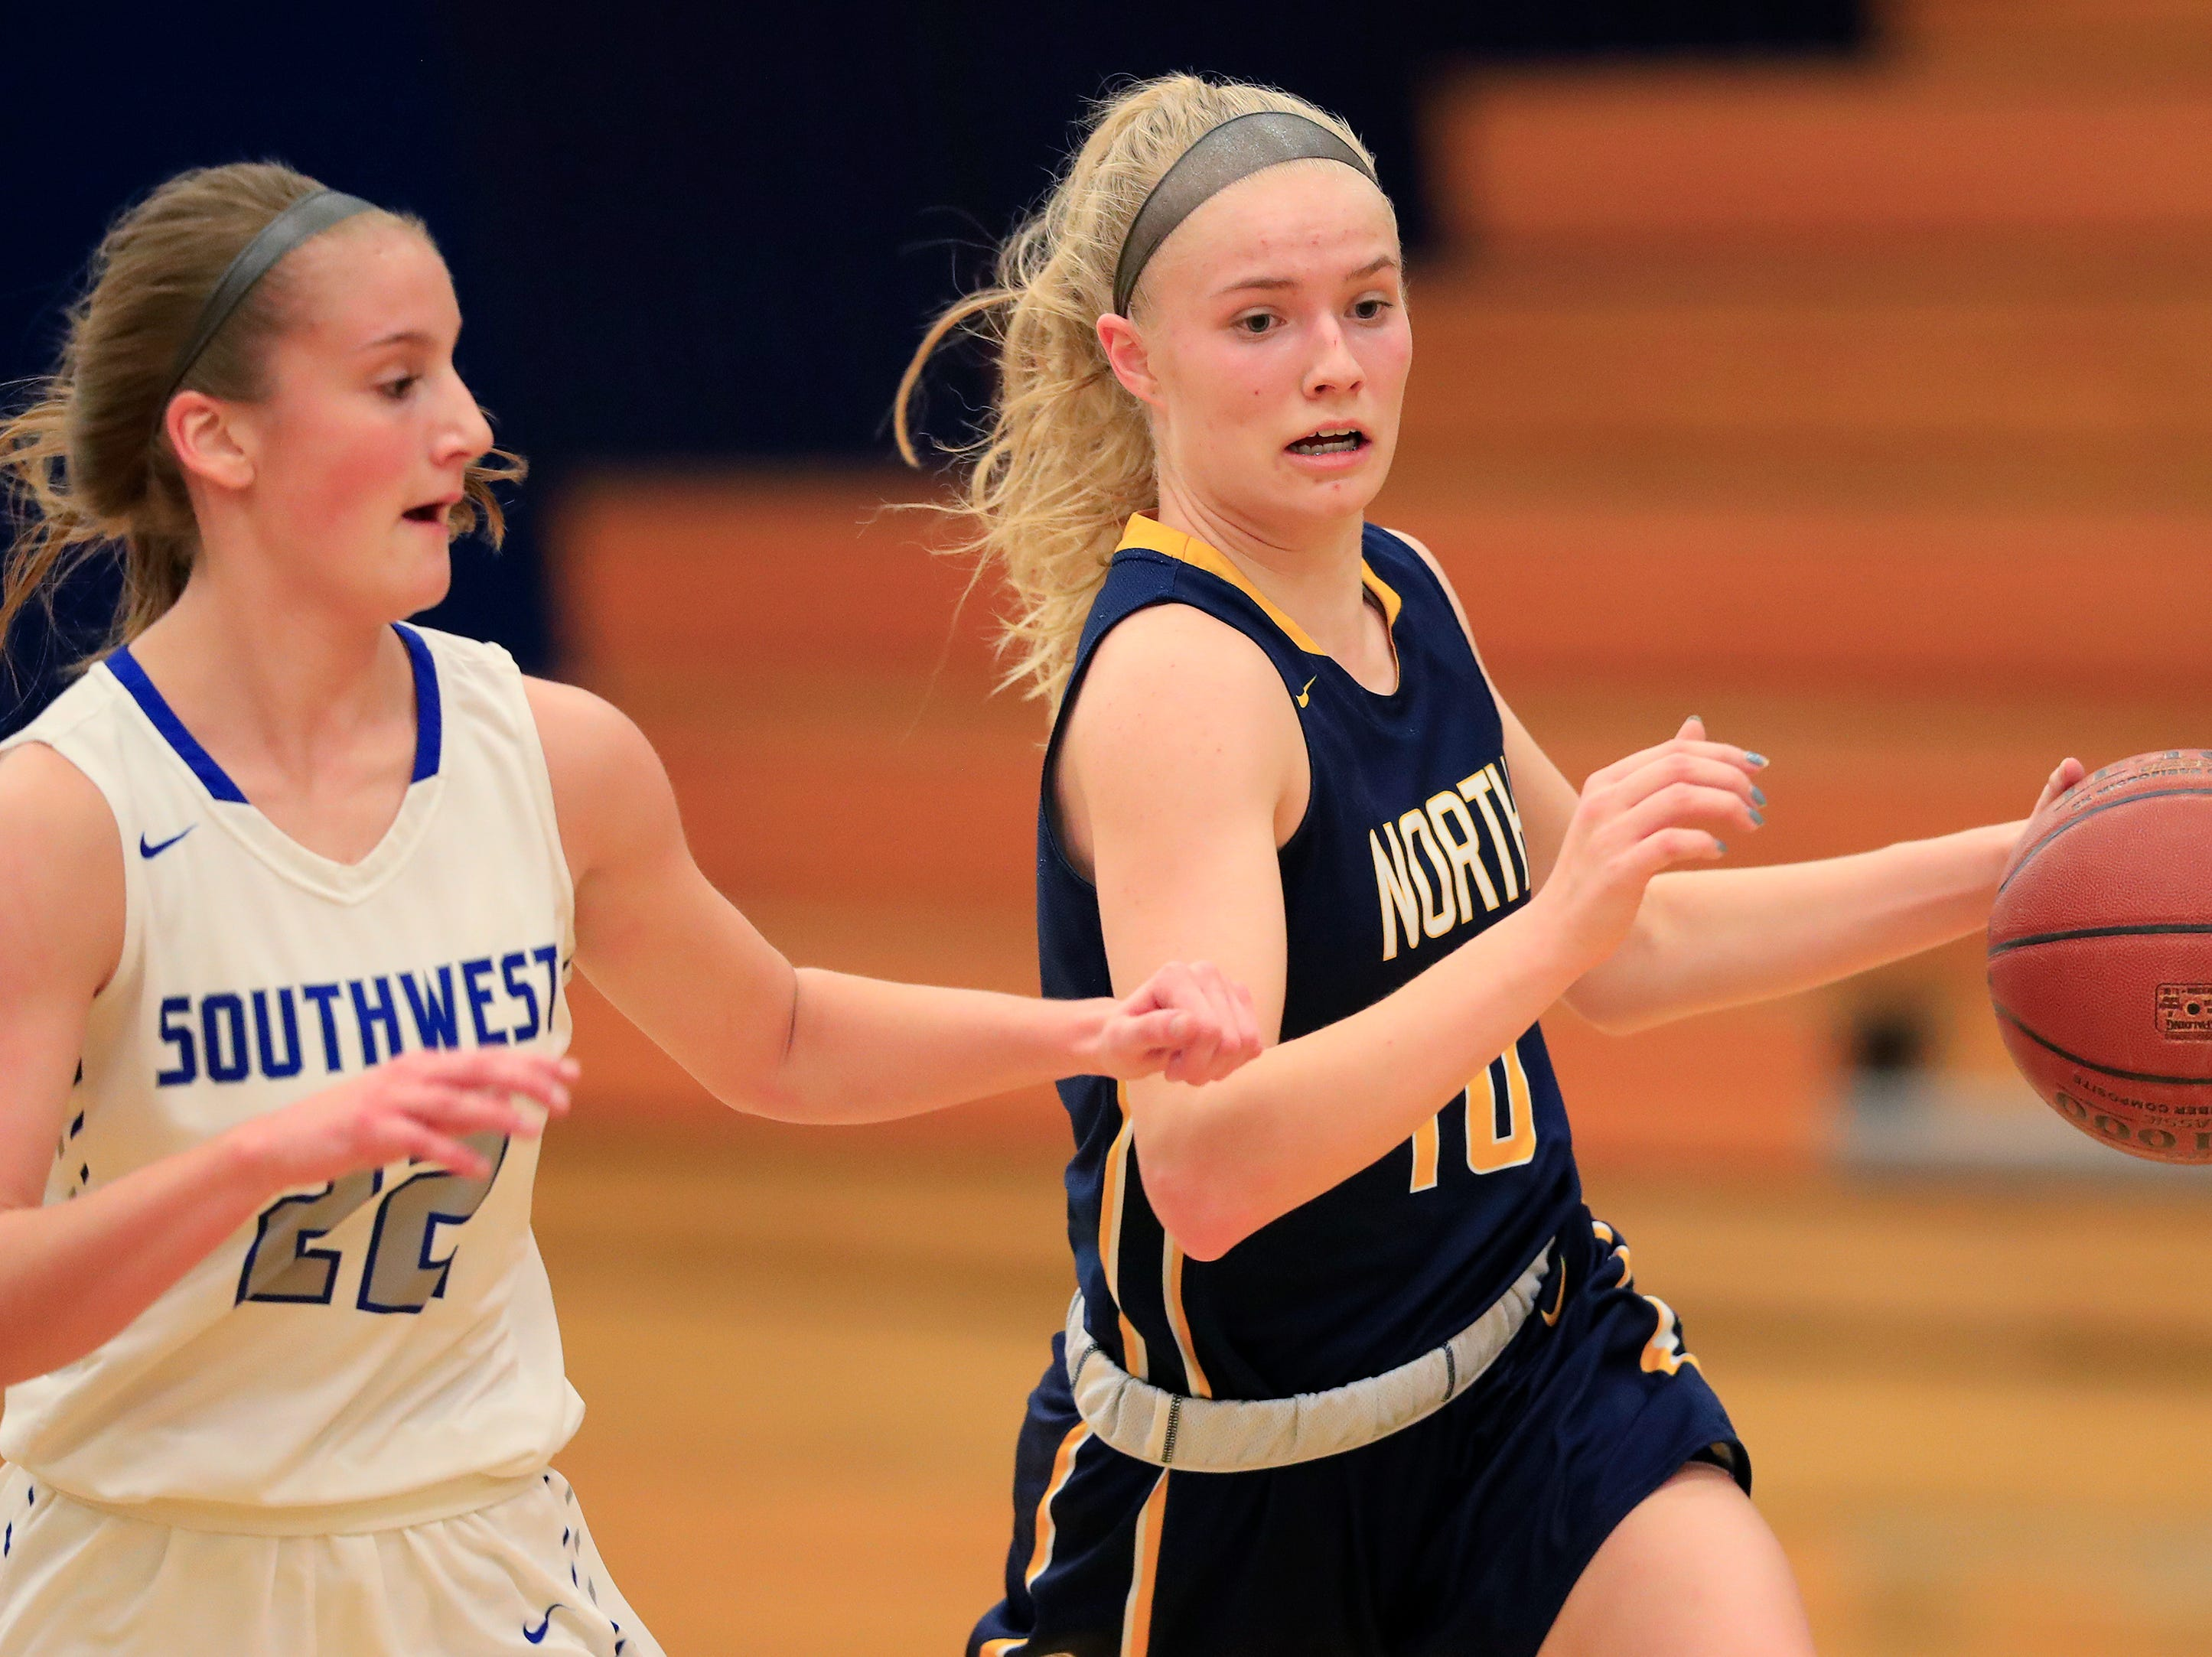 Sheboygan North's Sydney Vogel (10) runs past Green Bay Southwest's Lauren LePine (22) in a girls basketball game at Southwest High School on Tuesday, February 5, 2019 in Green Bay, Wis.